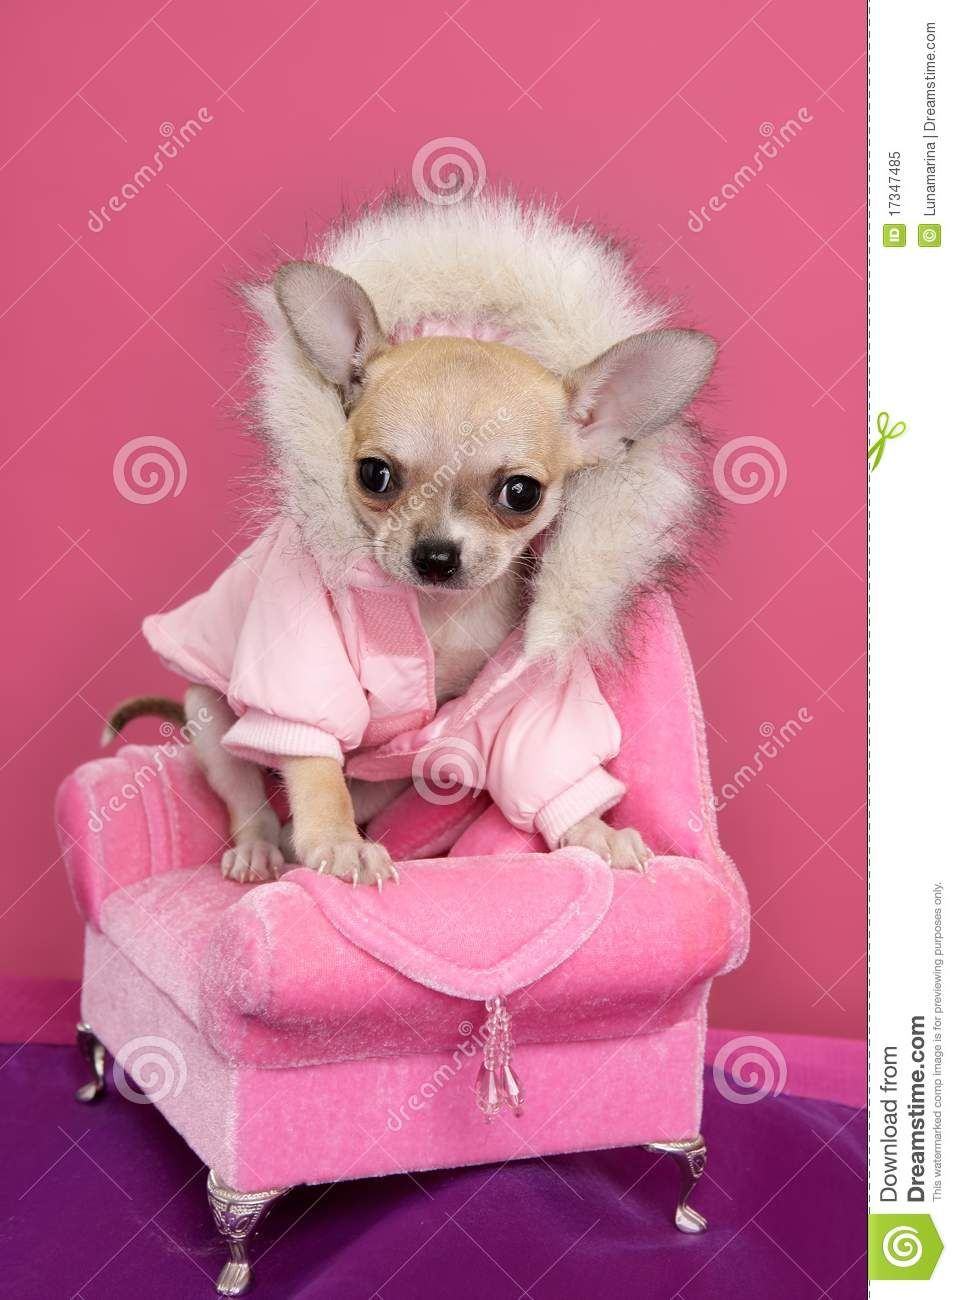 Fashion Chihuahua Dog Barbie Style Pink Armchair - Download From Over 29 Million High Quality Stock Photos, Images, Vectors. Sign up for FREE today. Image: 17347485